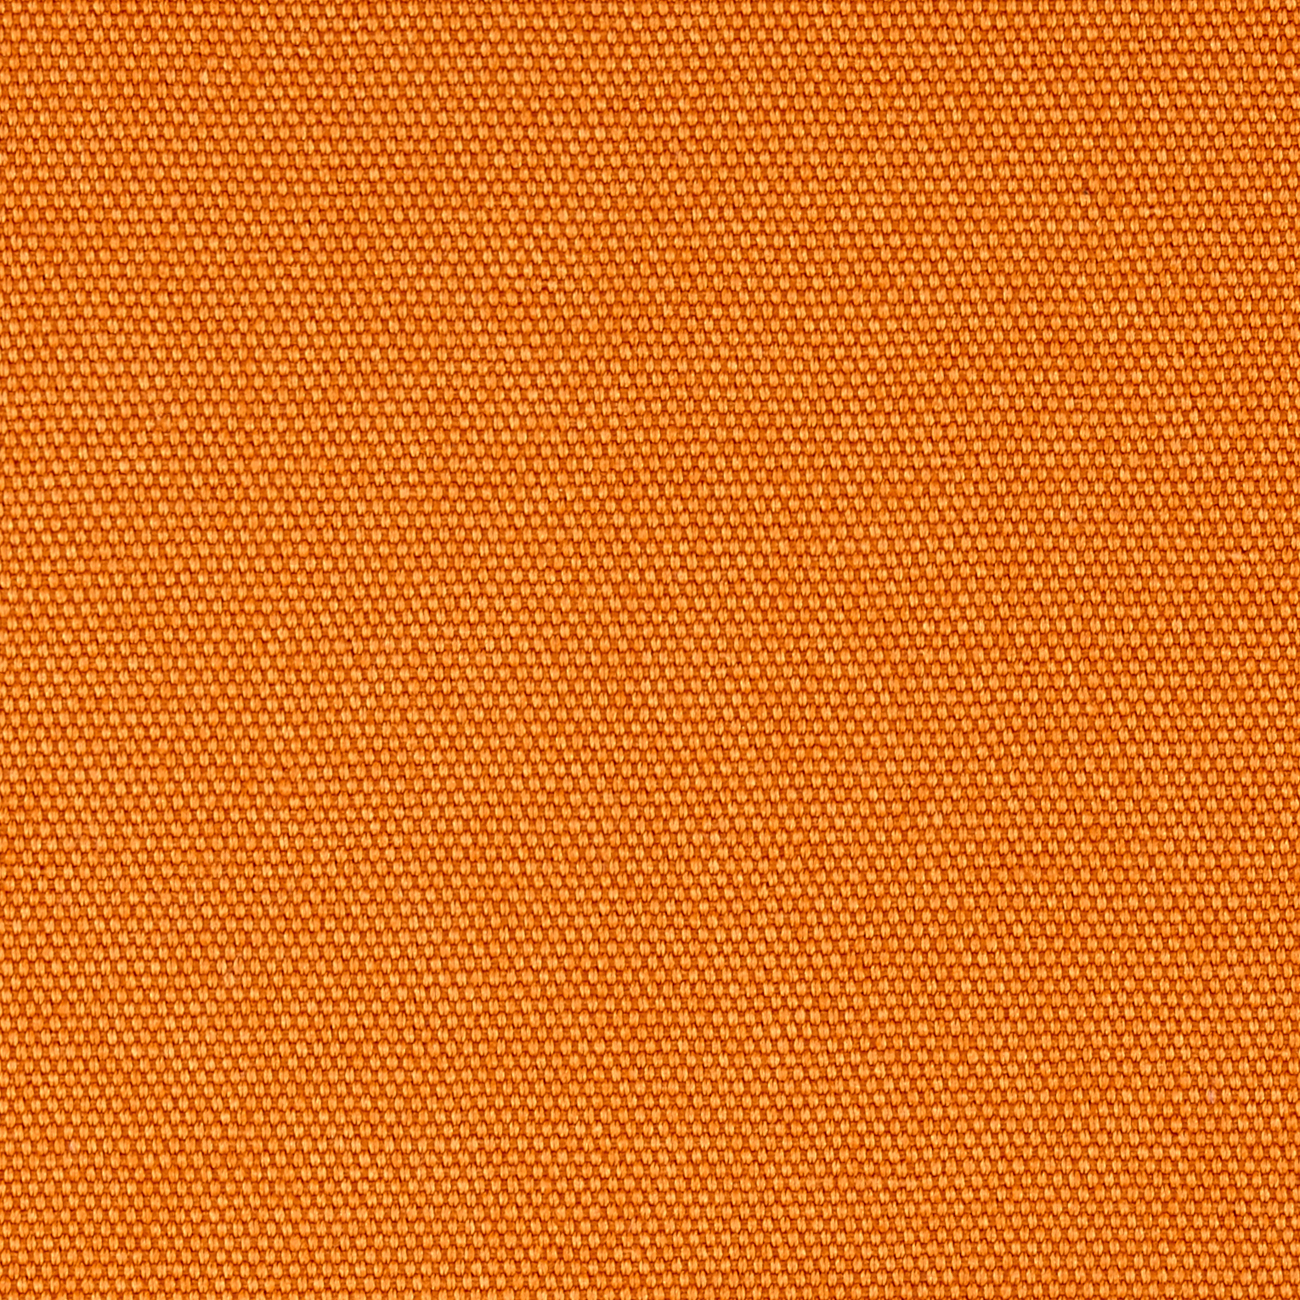 Kaufman Big Sur Canvas Solid Veggie Orange Fabric By The Yard